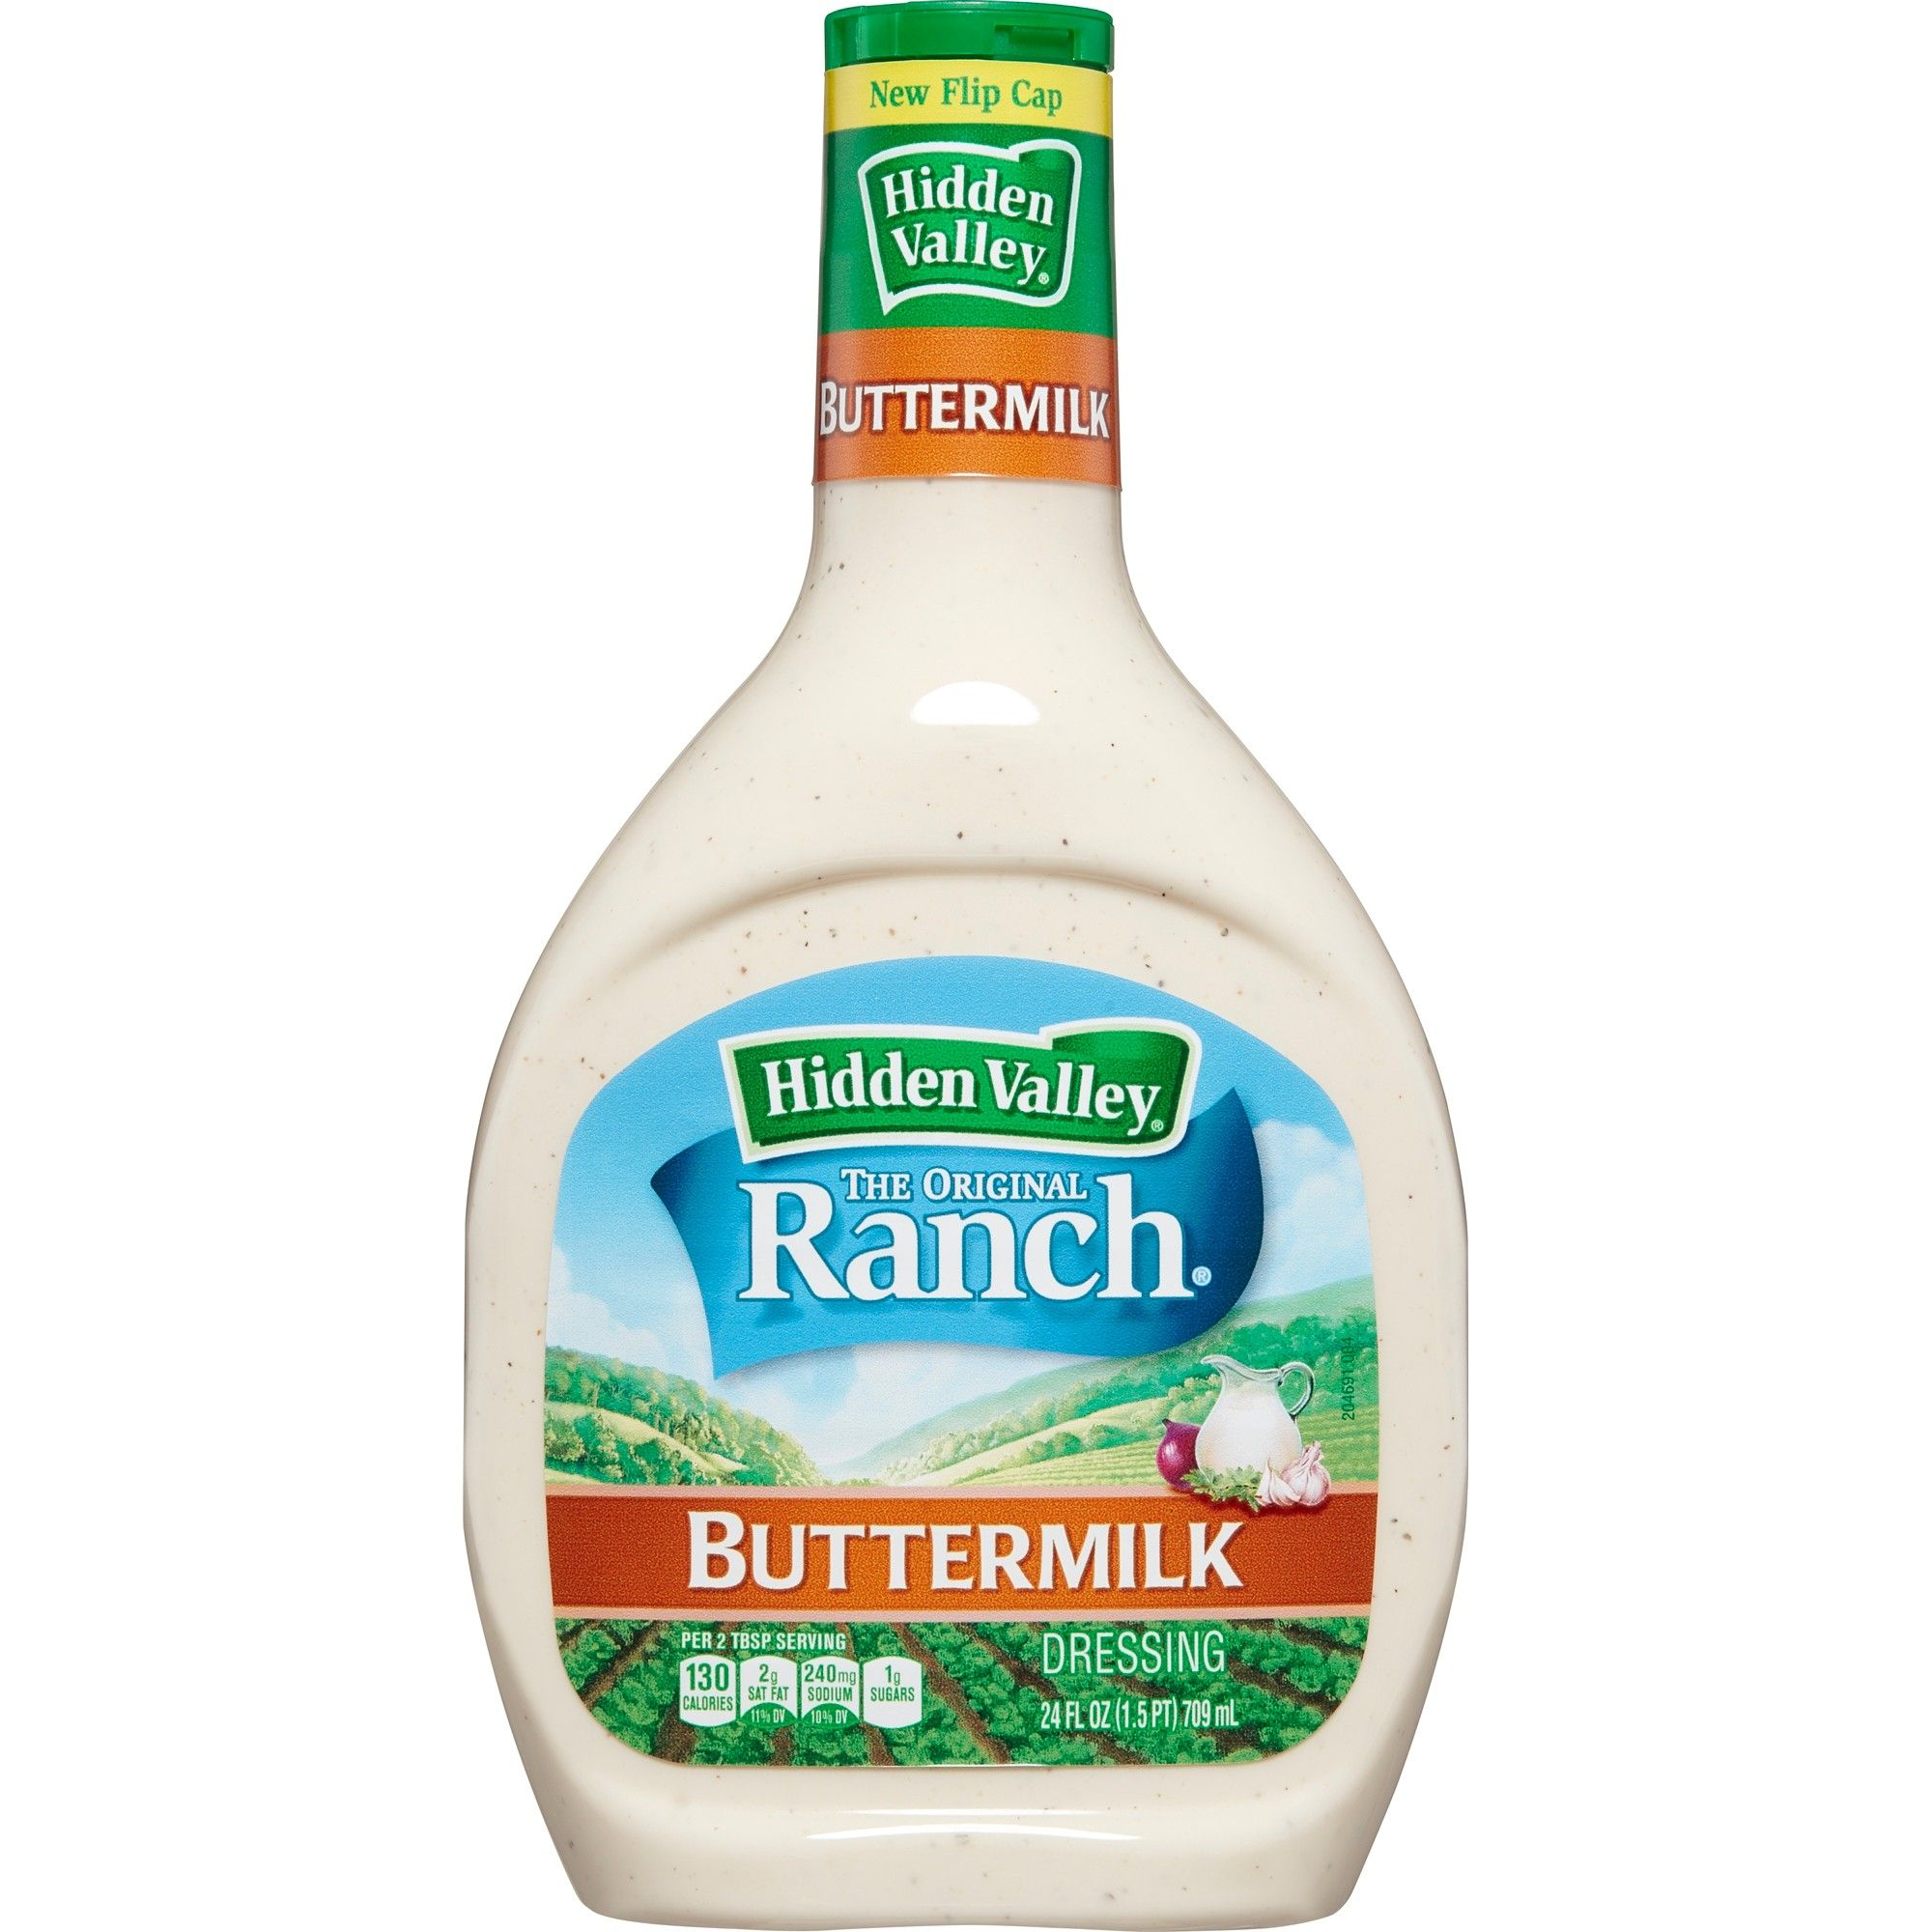 Hidden Valley Buttermilk Ranch Salad Dressing Topping Gluten Free 24oz Bottle With Images Hidden Valley Ranch Dressing Hidden Valley Original Ranch Dressing Light Salad Dressing